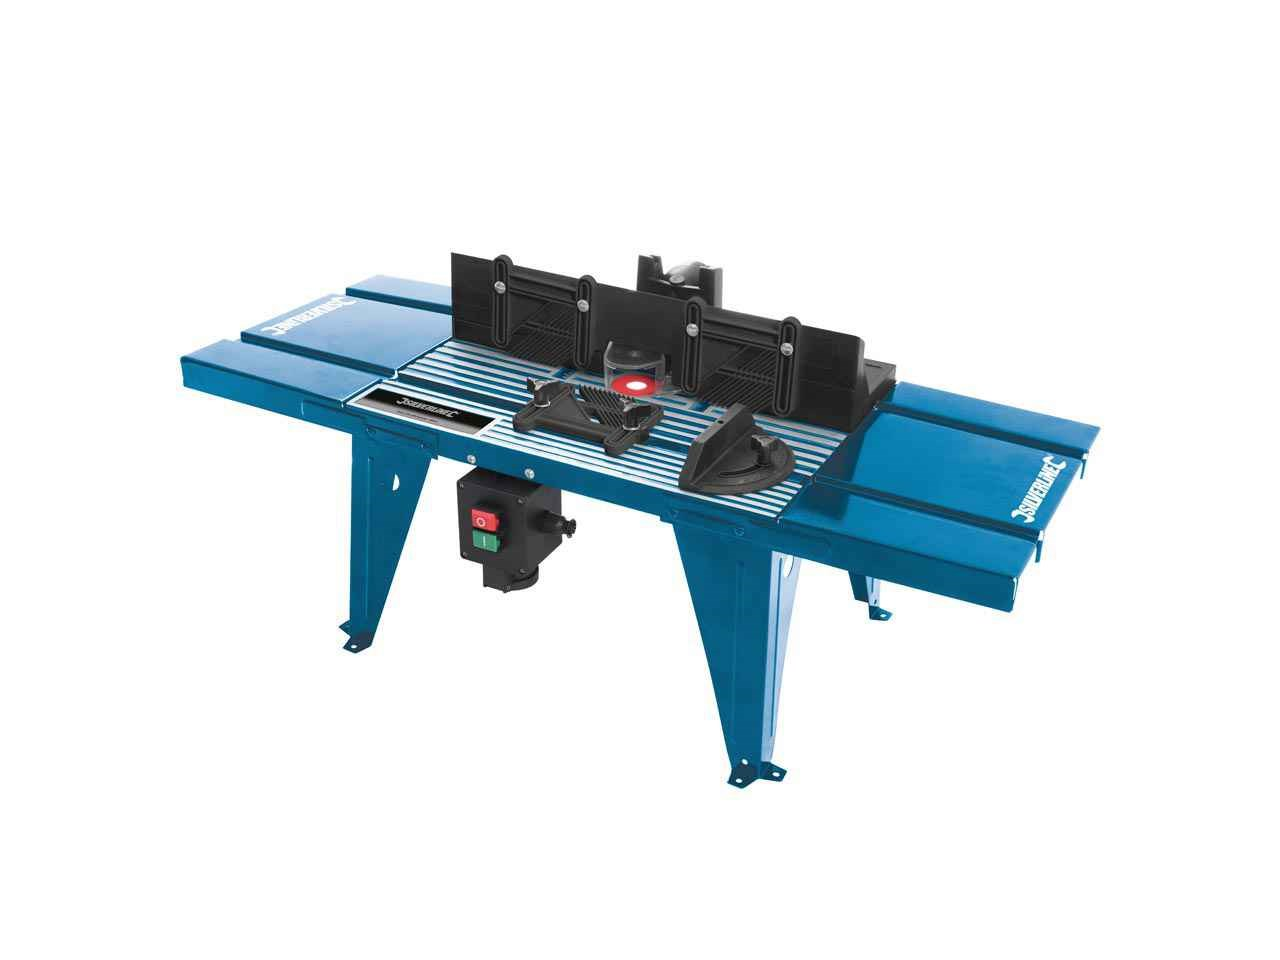 Silverline 460793 diy router table with protractor uk 850 x 335mm greentooth Image collections